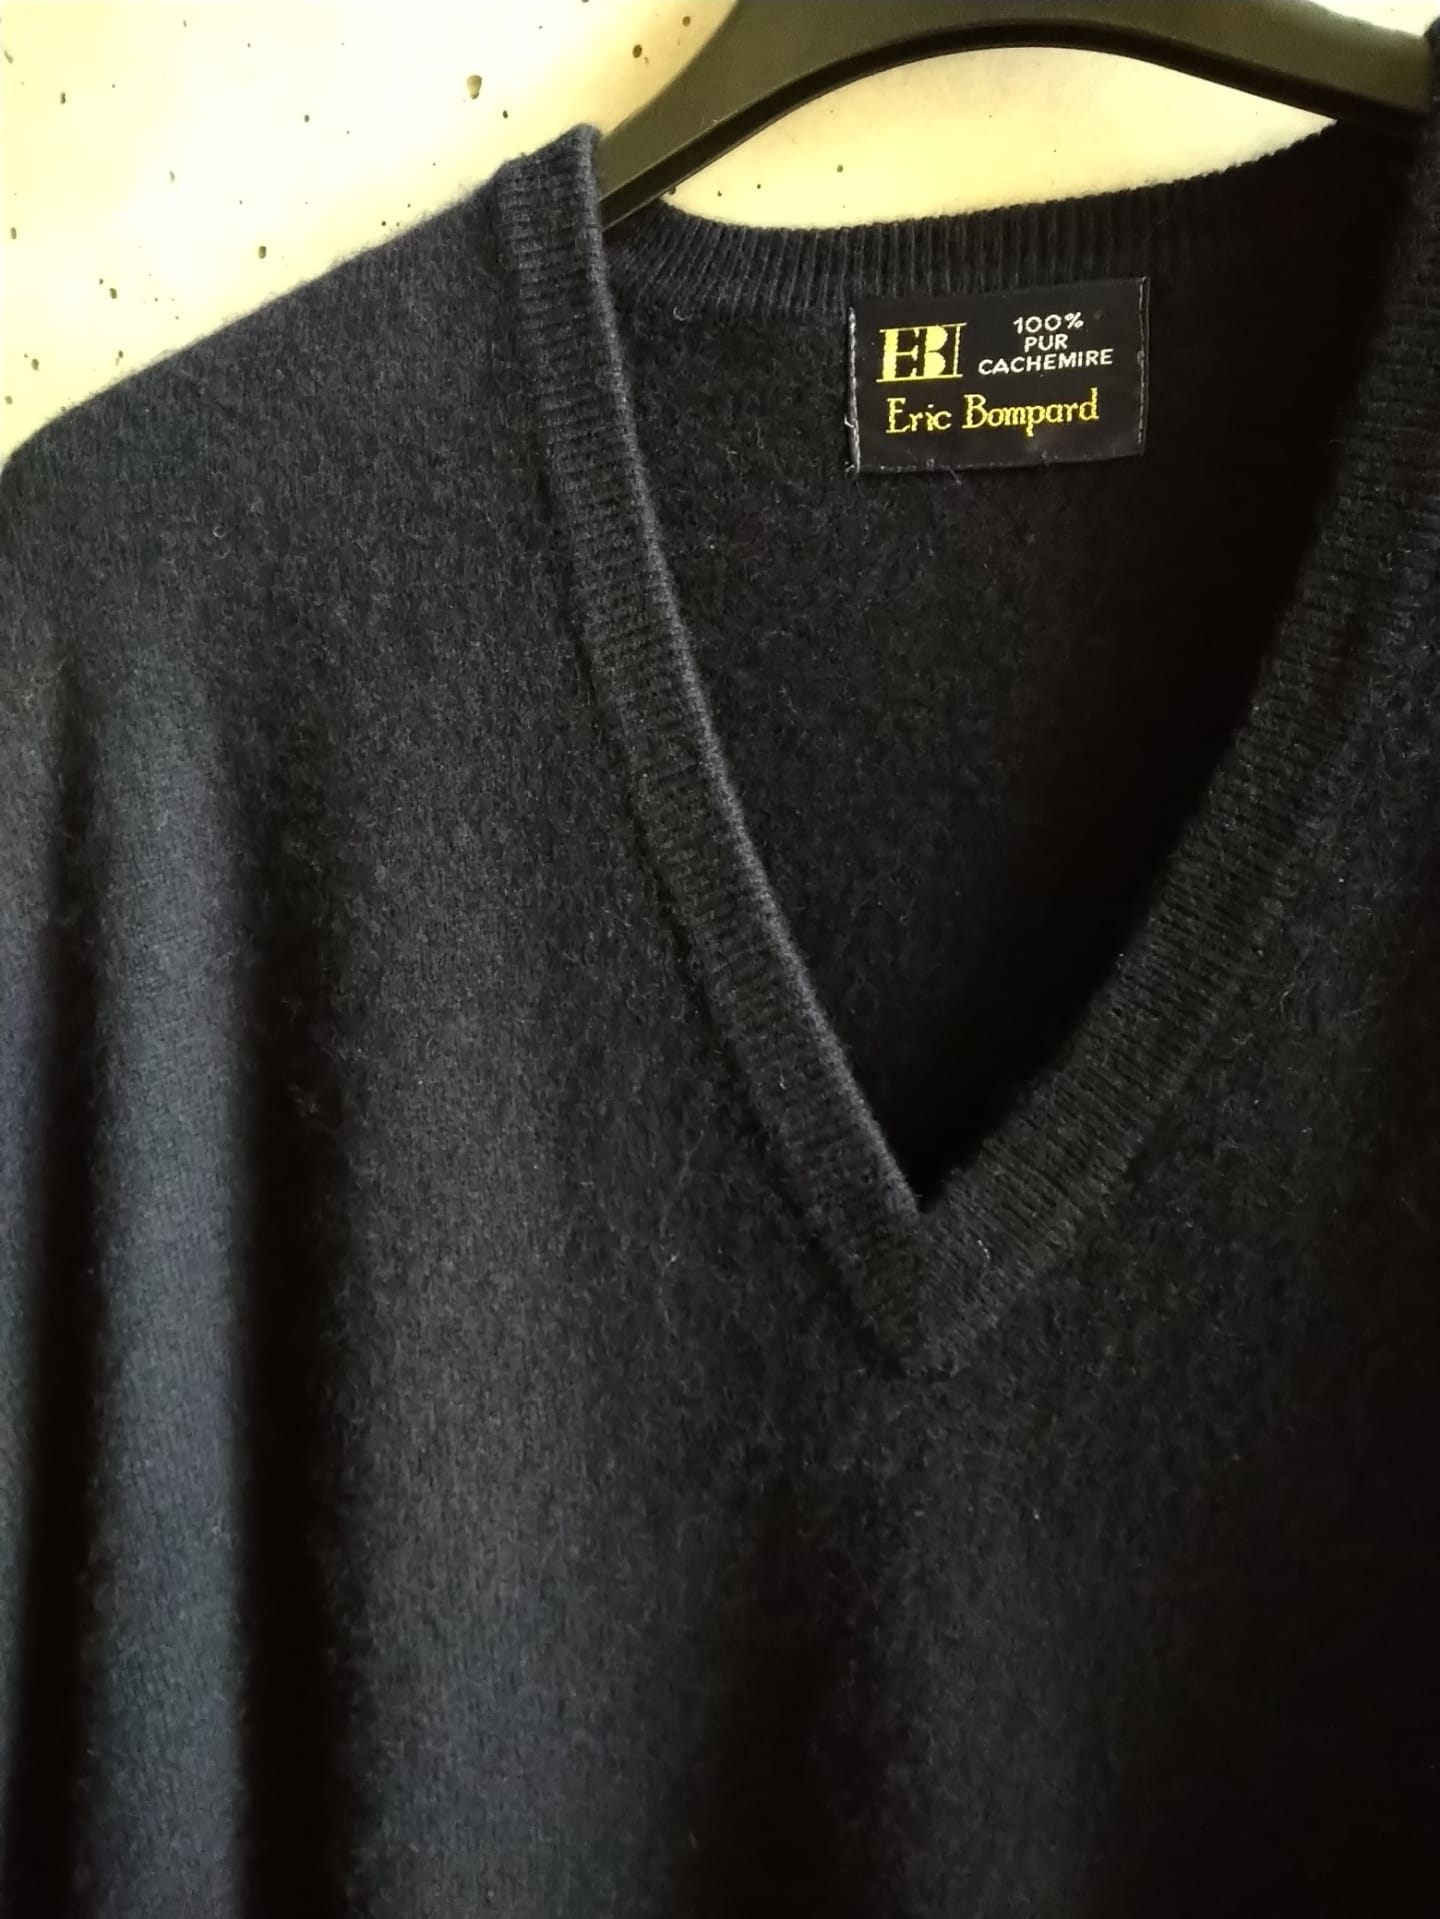 Eric Bompard cashmere sweater